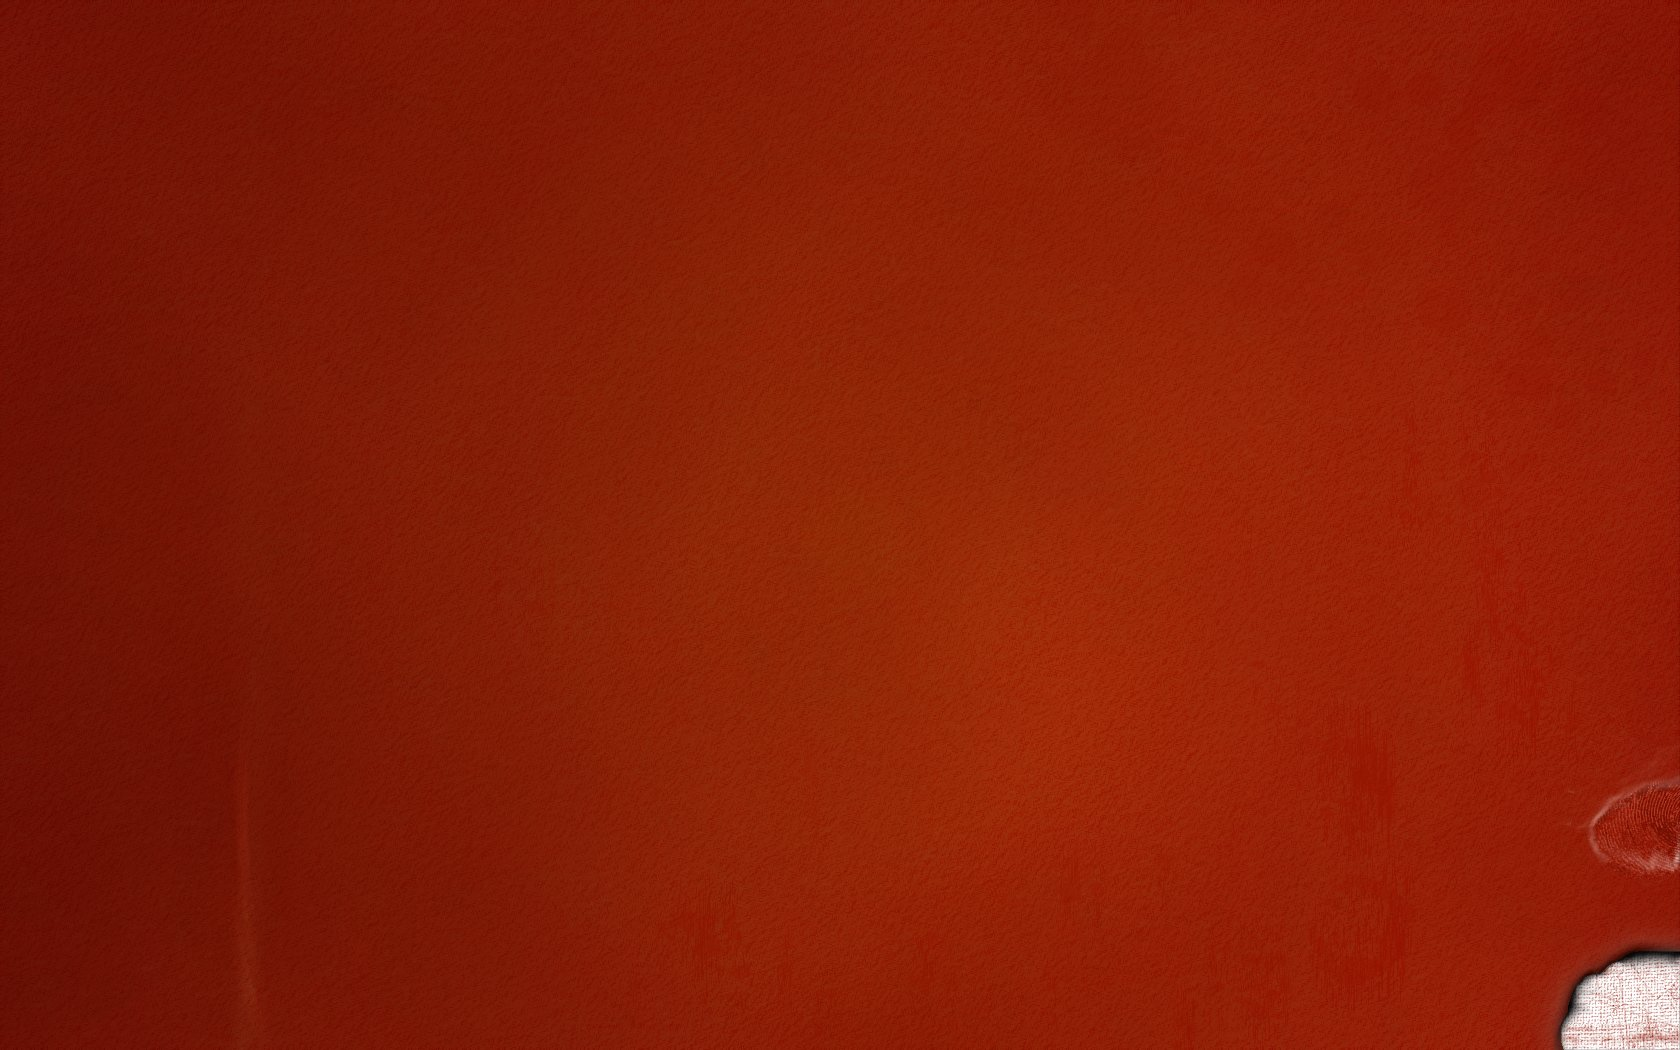 Image Gallery orange dark red